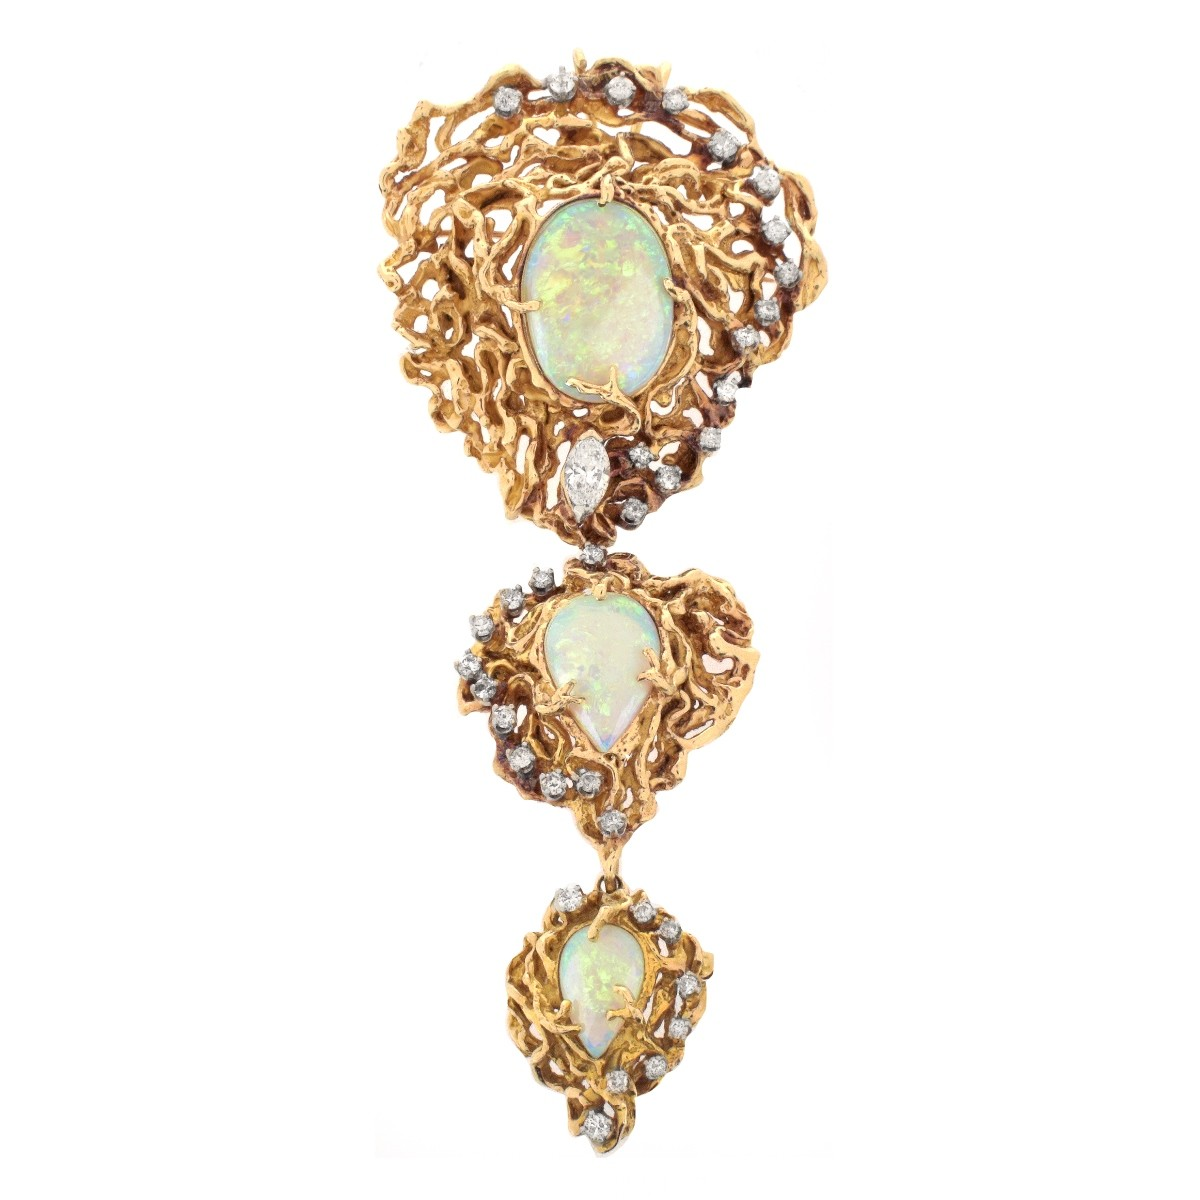 Opal, Diamond and 14K Pendant / Brooch